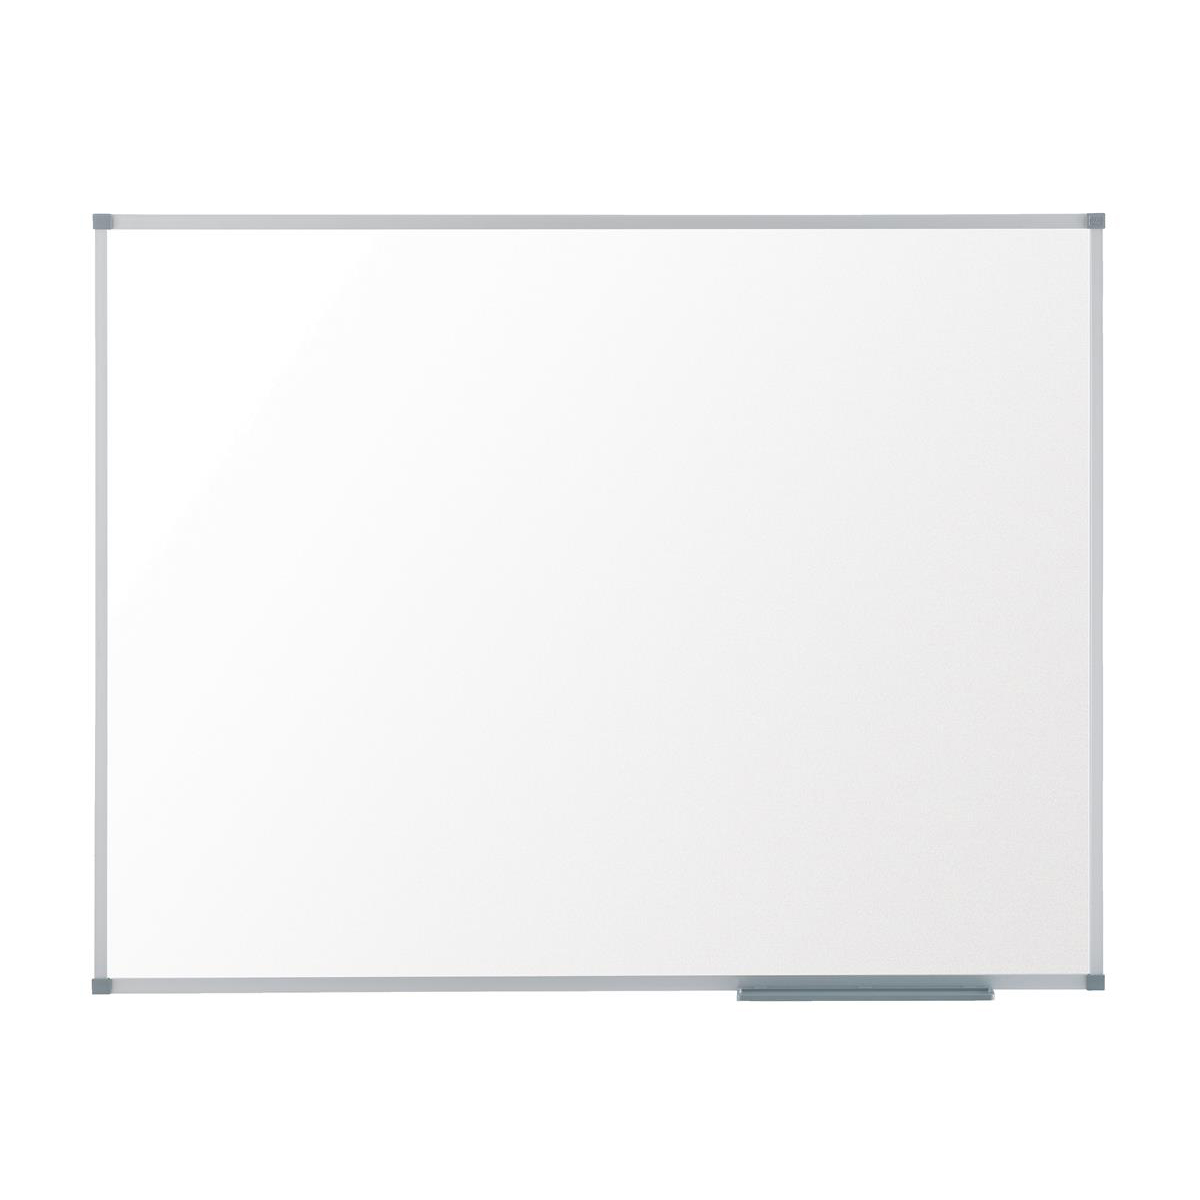 Non-Magnetic Nobo Classic Whiteboard Melamine Surface Non-magnetic Aluminium Trim W900xH600mm White Ref 1905202